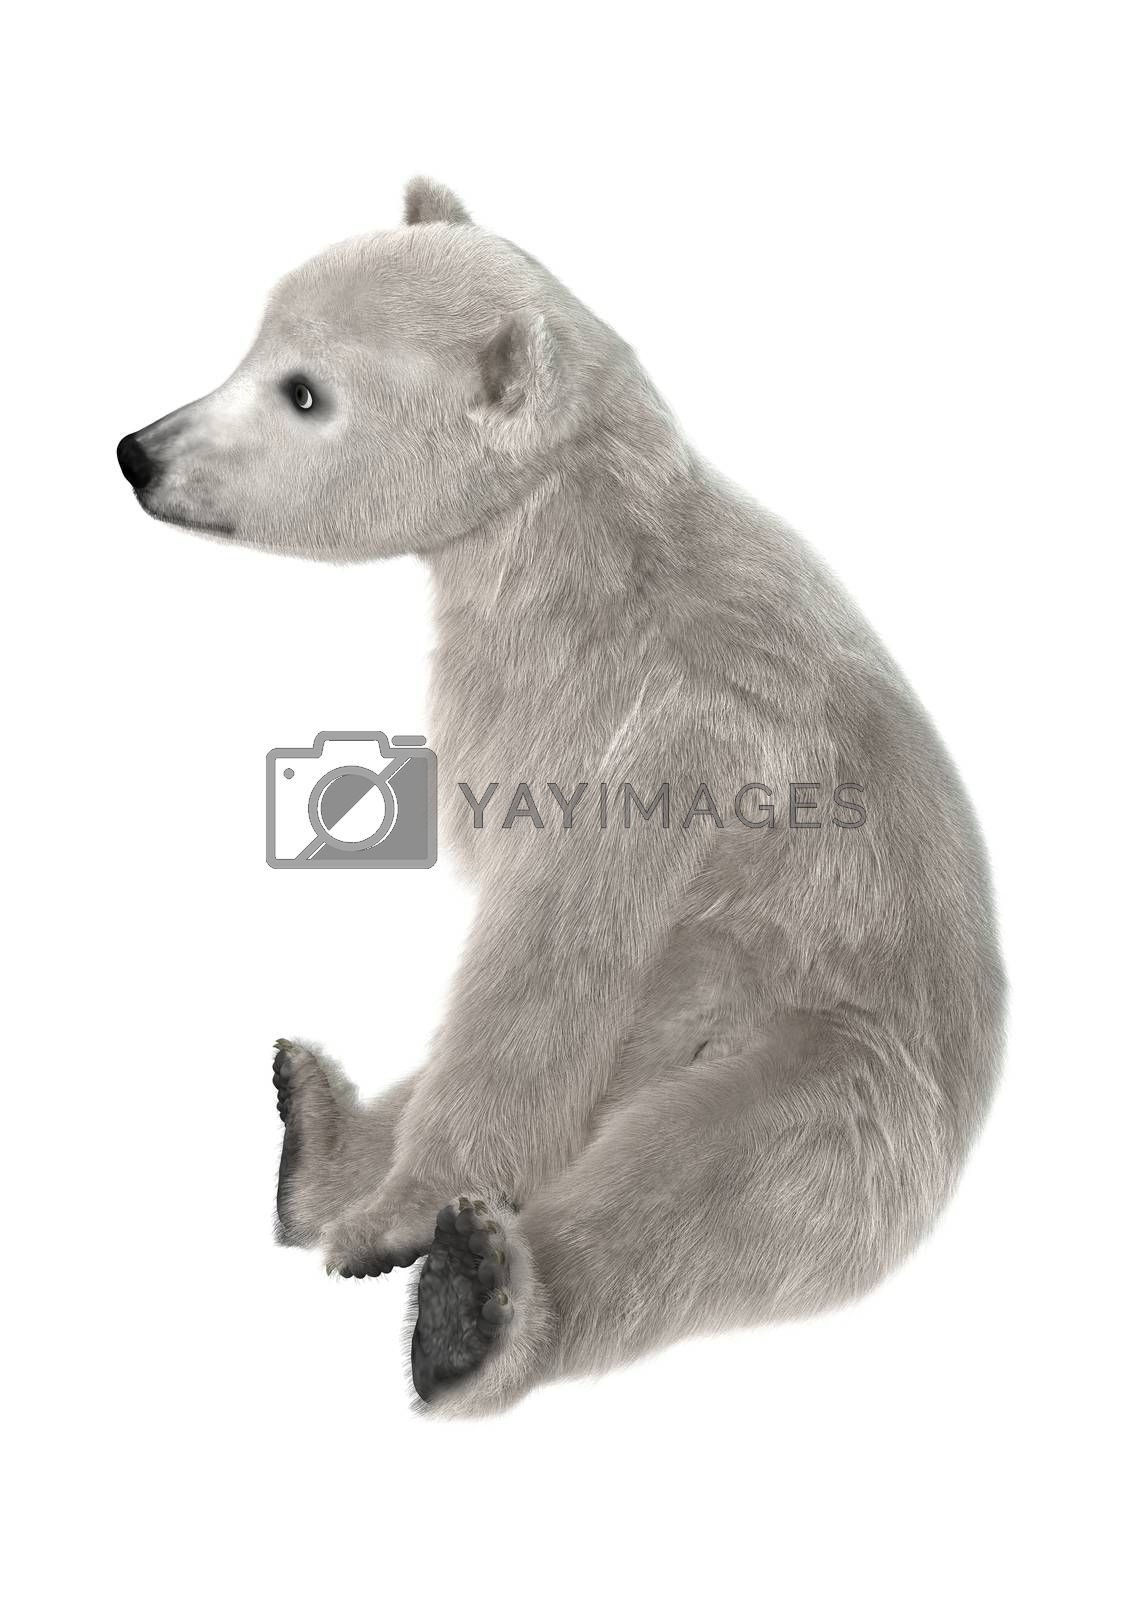 3D digital render of a polar bear cub sitting isolated on white background